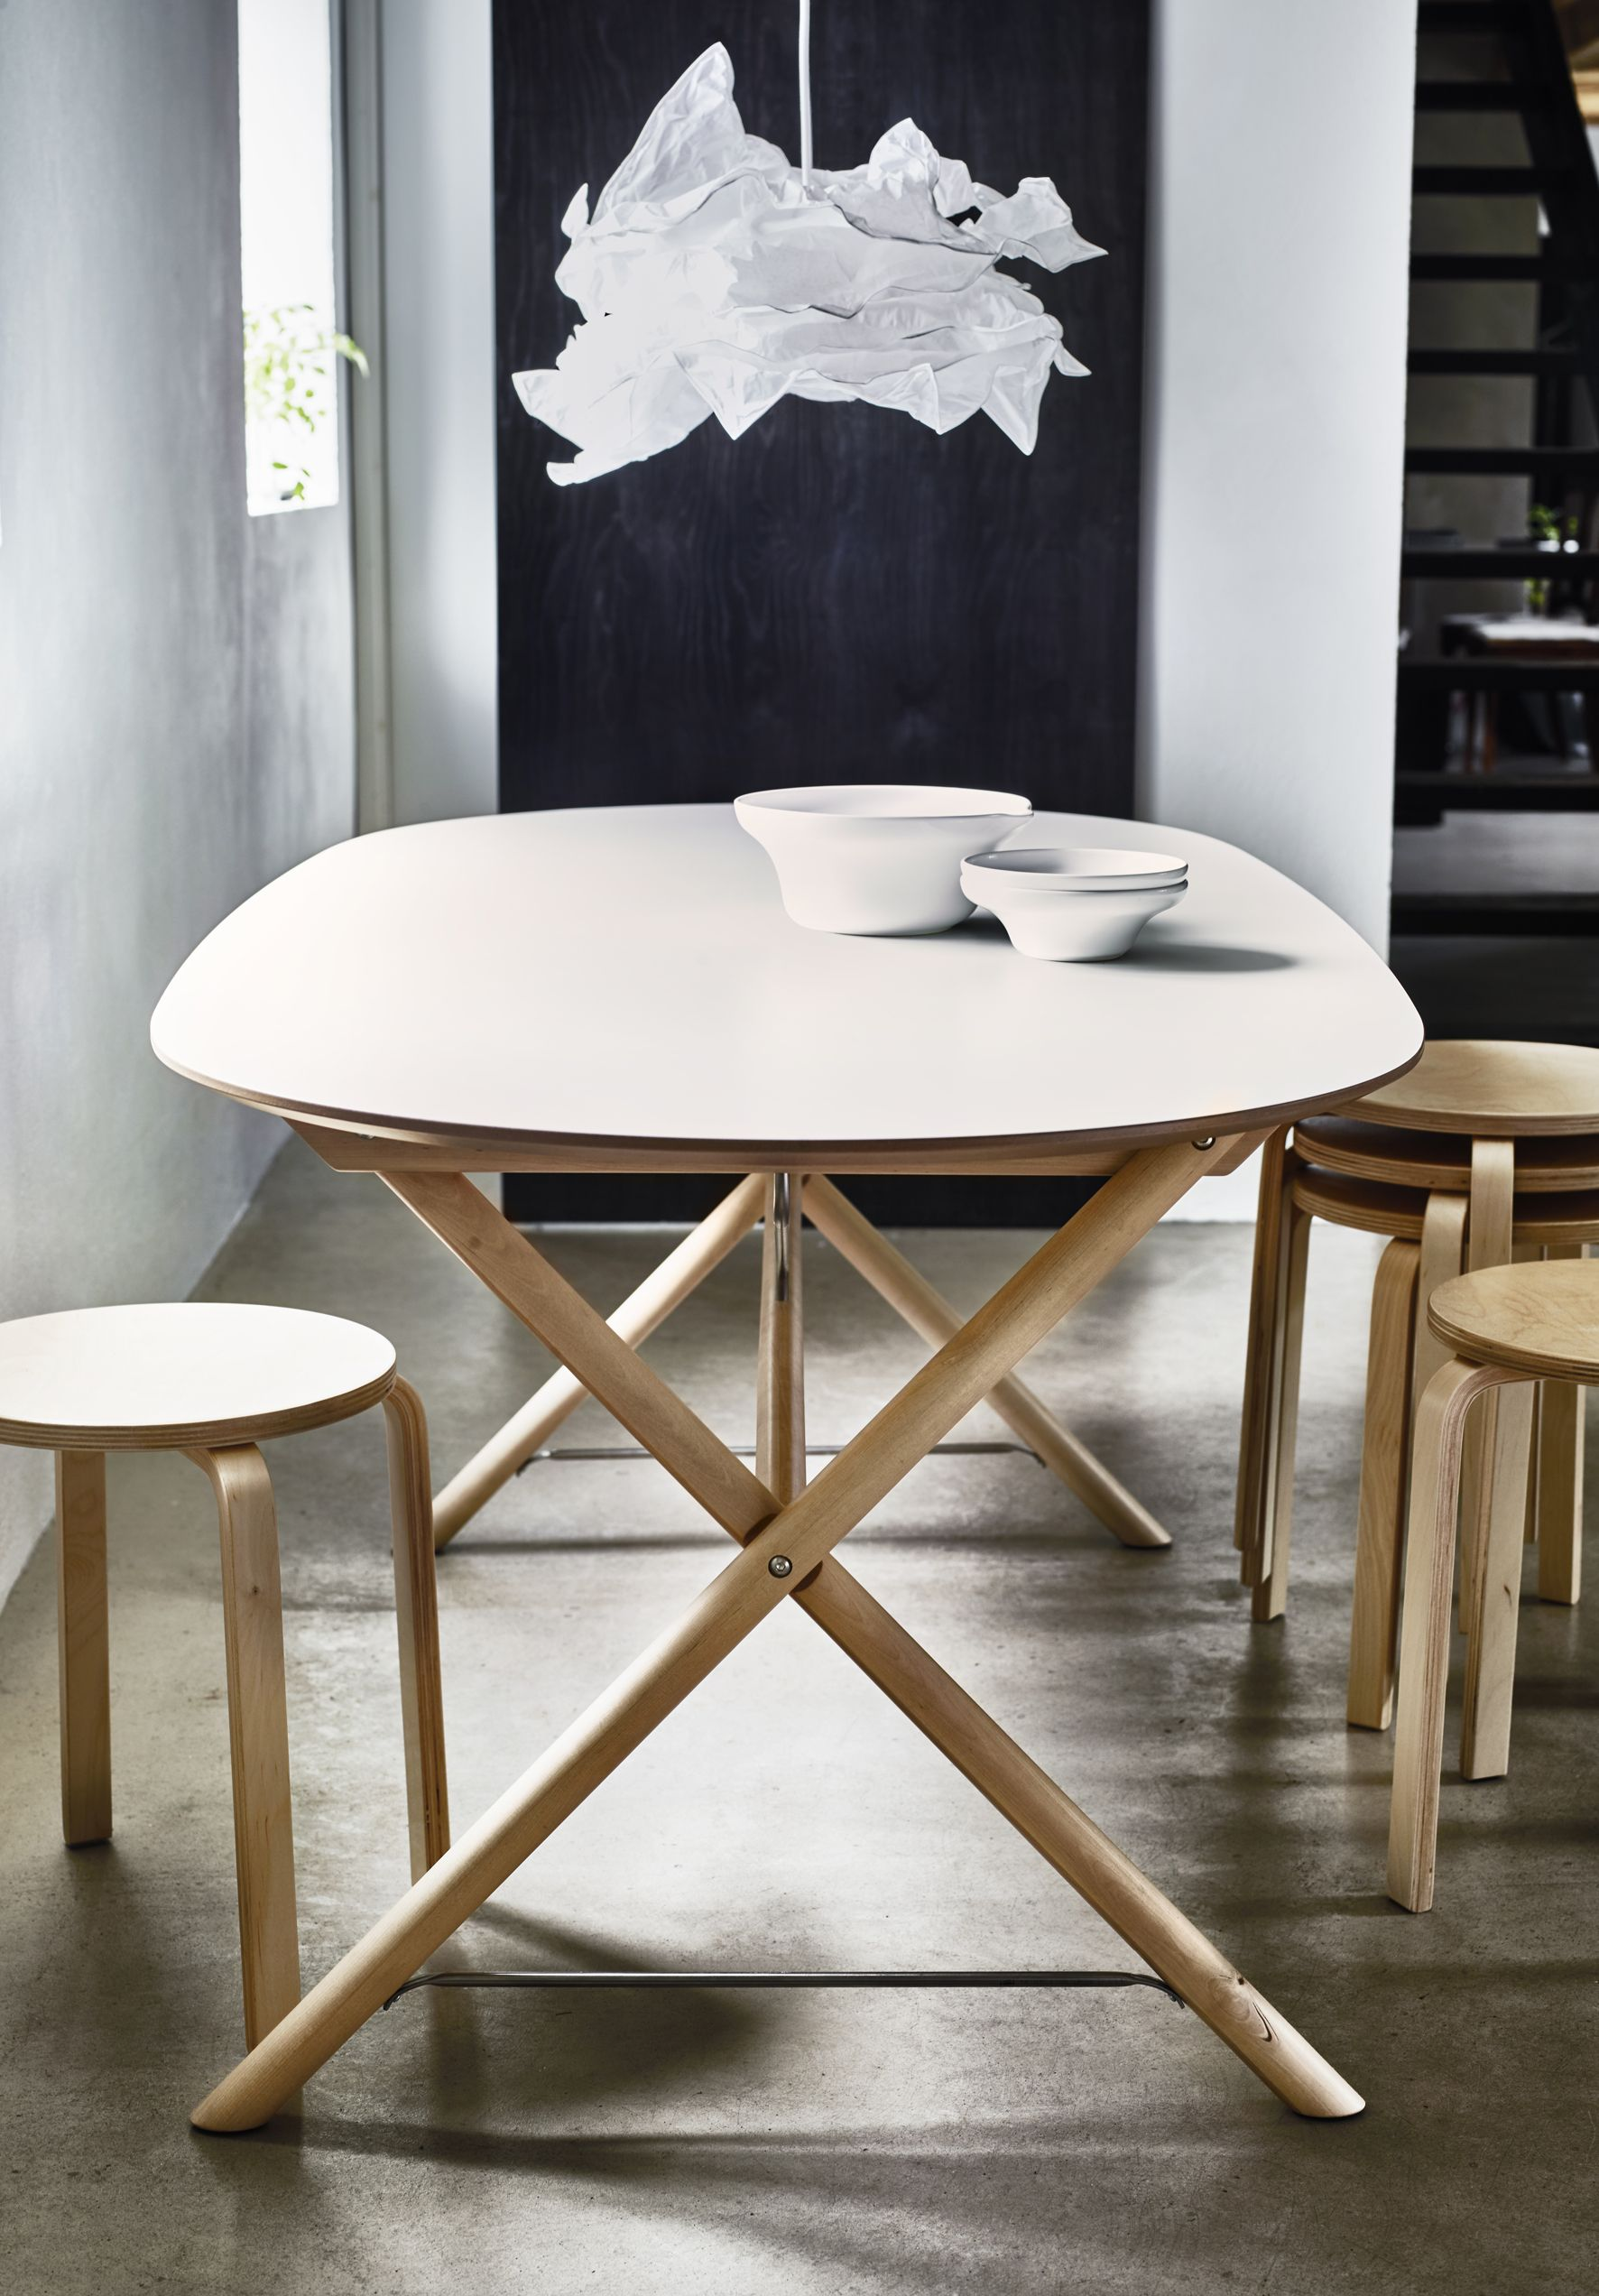 slÄhult table, blanc bouleau, dalshult blanc bouleau | ikea table